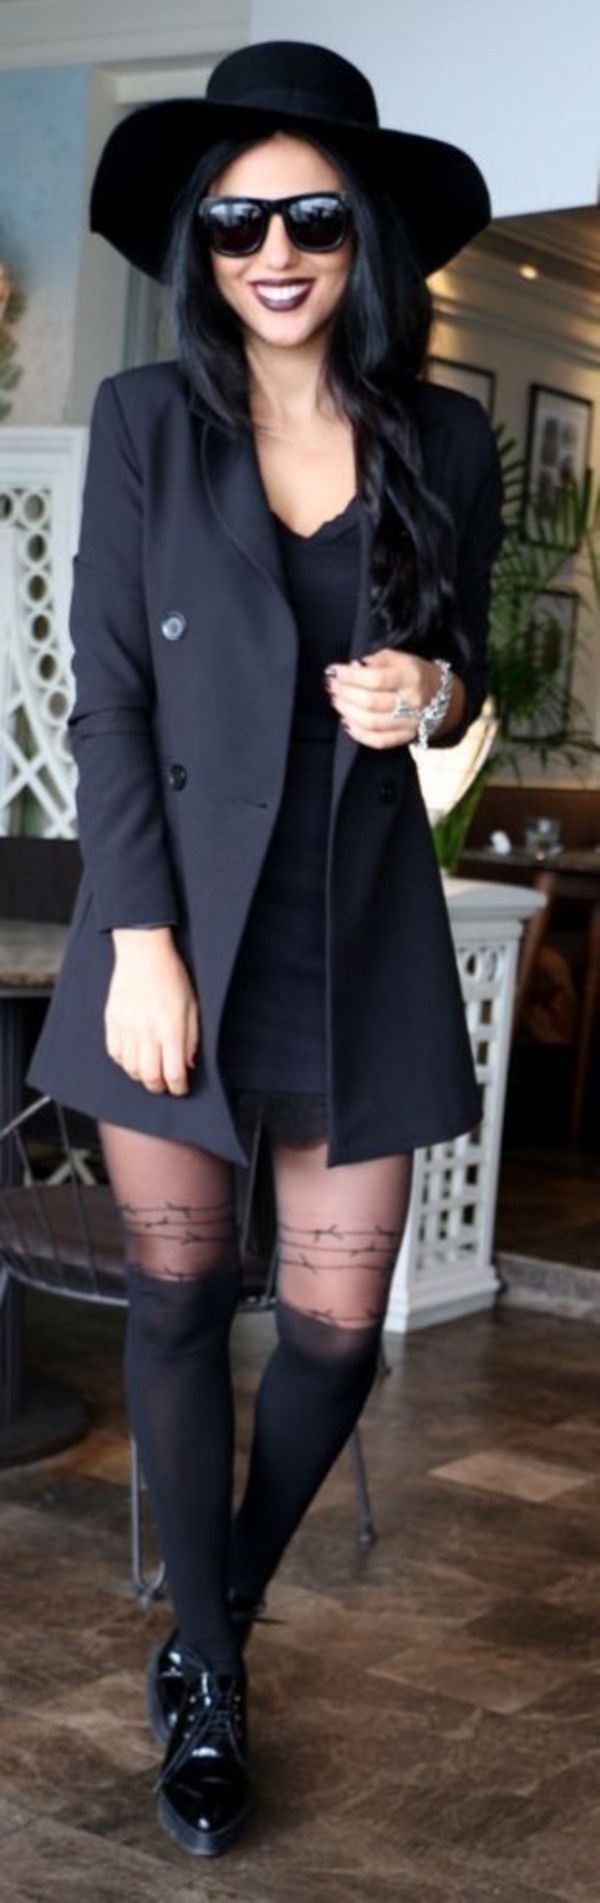 Stunning ALL BLACK Outfits For Women0281